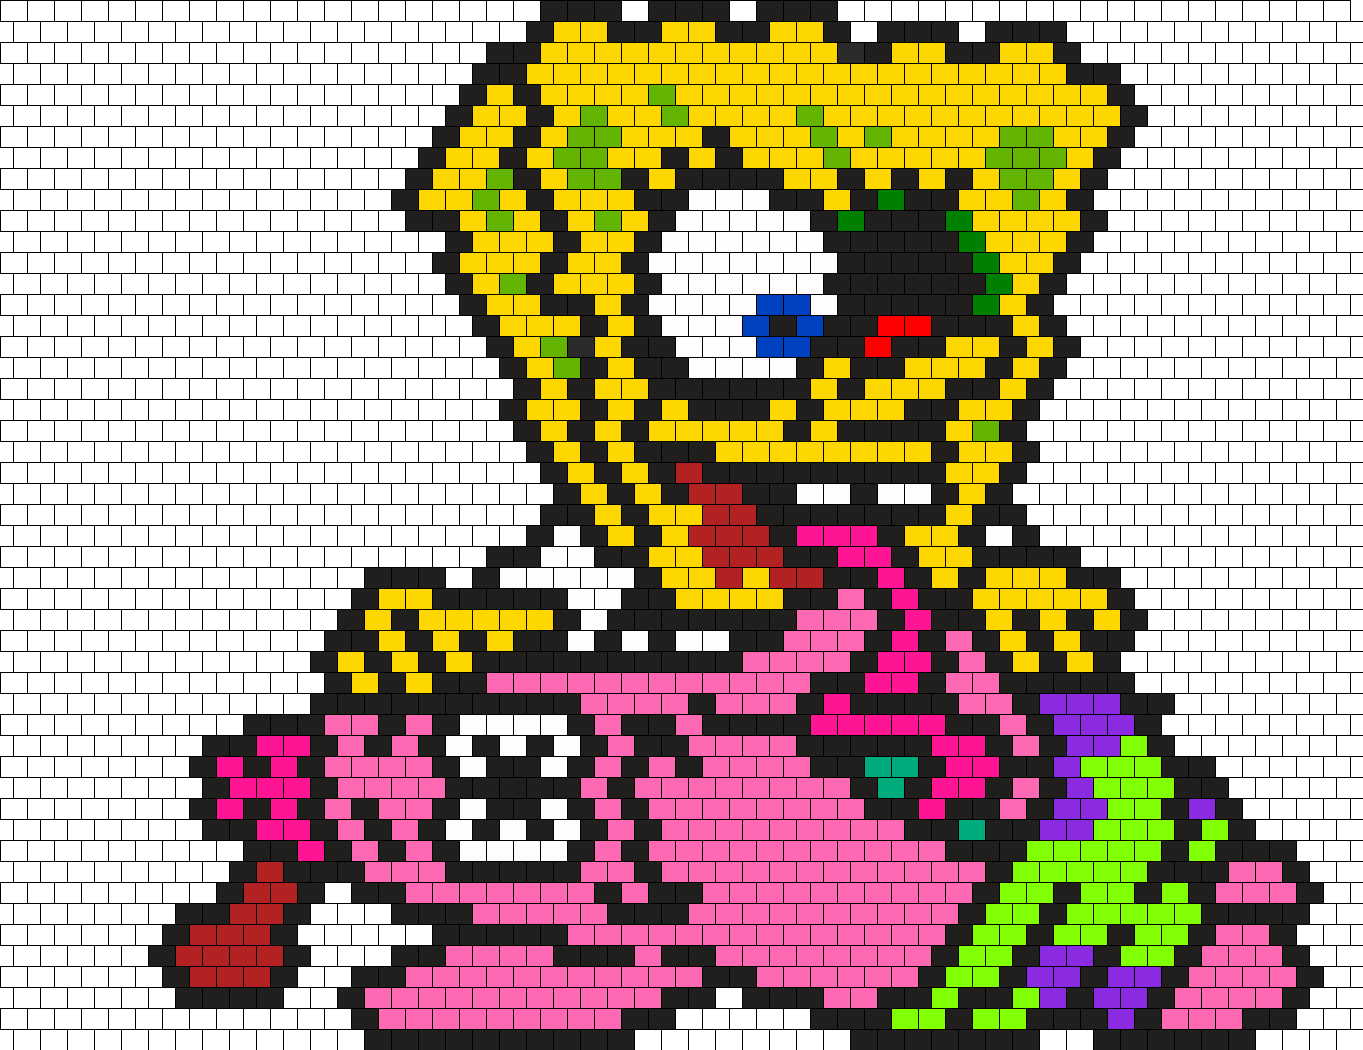 Zombie Spongebob Squarepants Peyote Bead Pattern